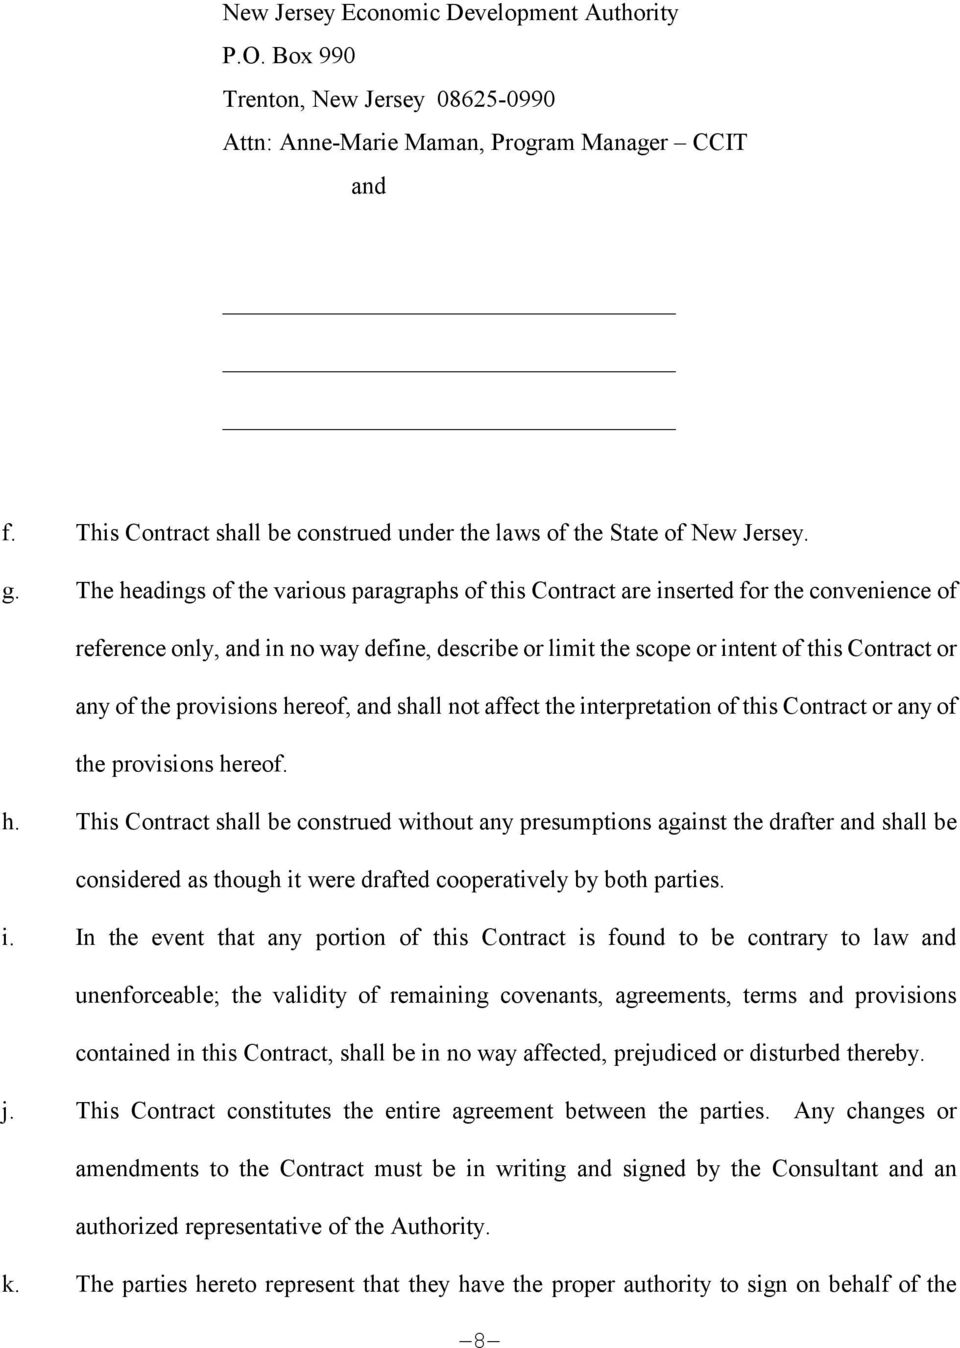 The headings of the various paragraphs of this Contract are inserted for the convenience of reference only, and in no way define, describe or limit the scope or intent of this Contract or any of the